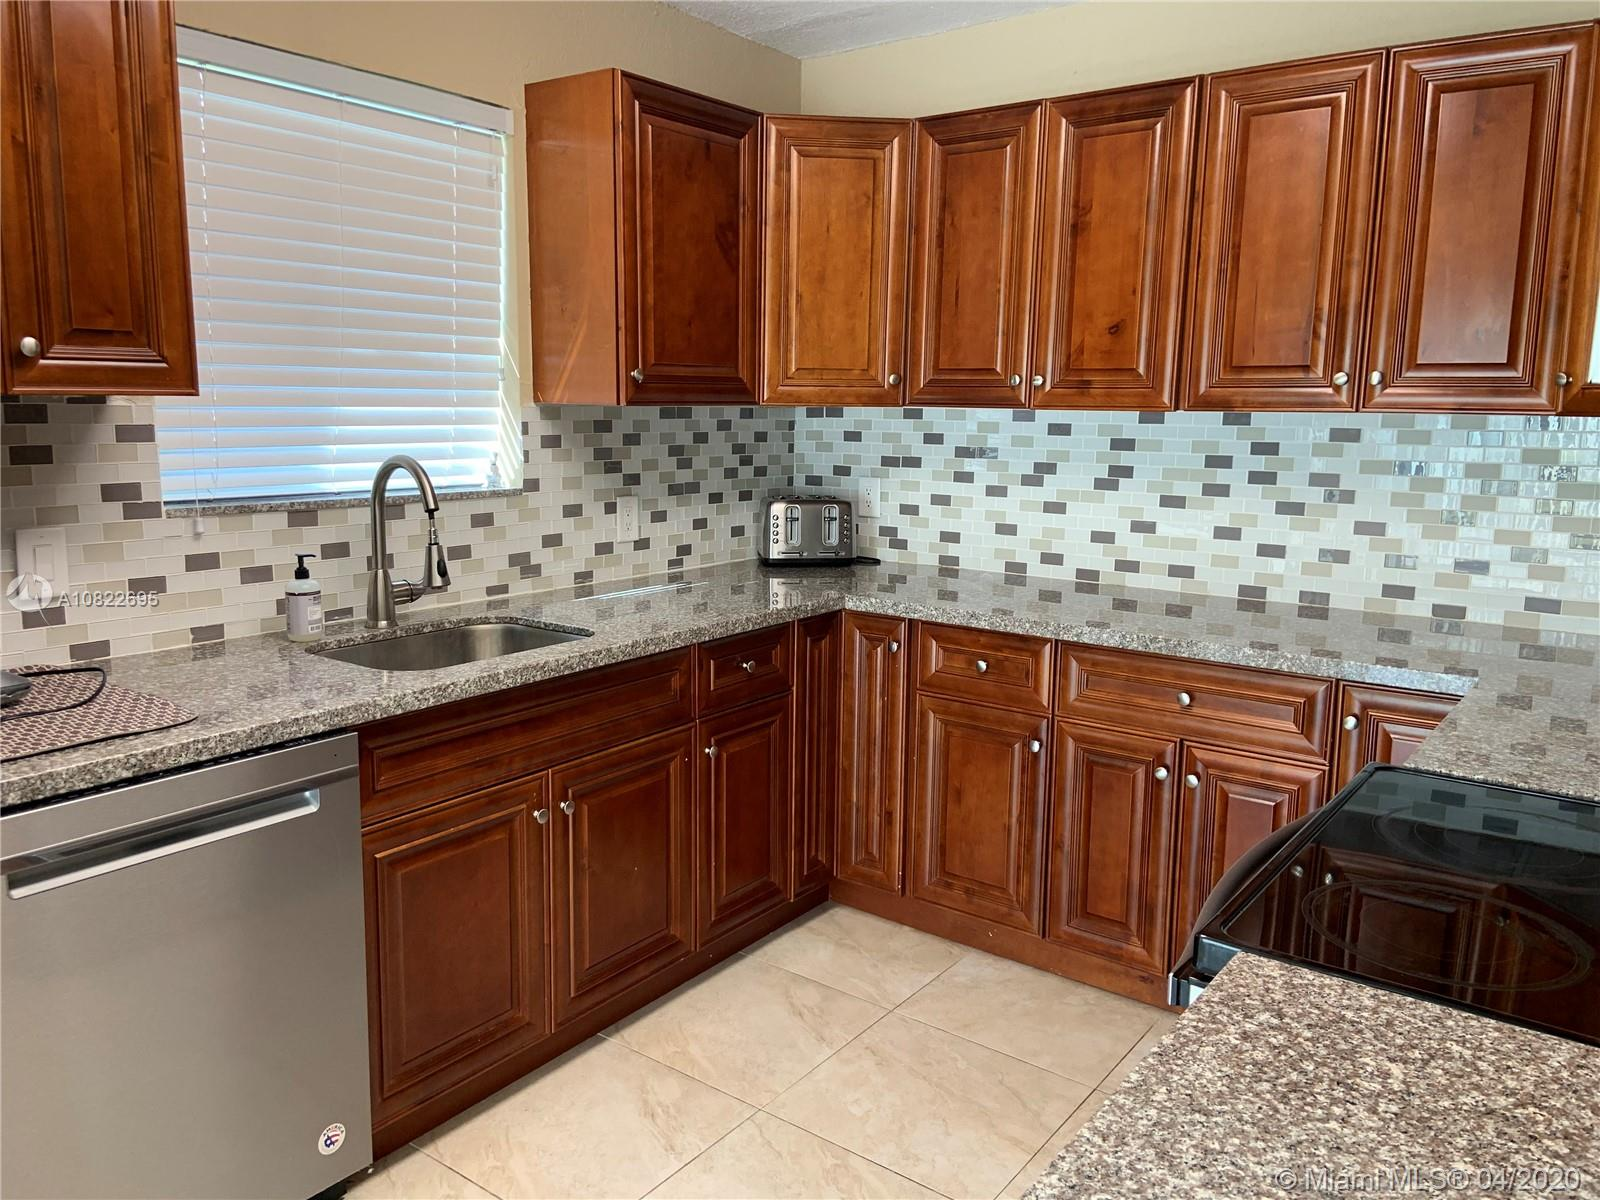 Completely remodeled one story single family home with fruit trees and a nice size backyard. Perfect for entertainments, New Central AC, Newer roof, Impact windows, Close to great schools, major highways, shops, places of worship, restaurants, movie theaters, hospitals, Pembroke Mall, Aventura Mall,  supper Walmart, Guitar hotel, Hard rock, casino, airport, and the beaches. Run don,t walk. Easy to show, No HOA fee